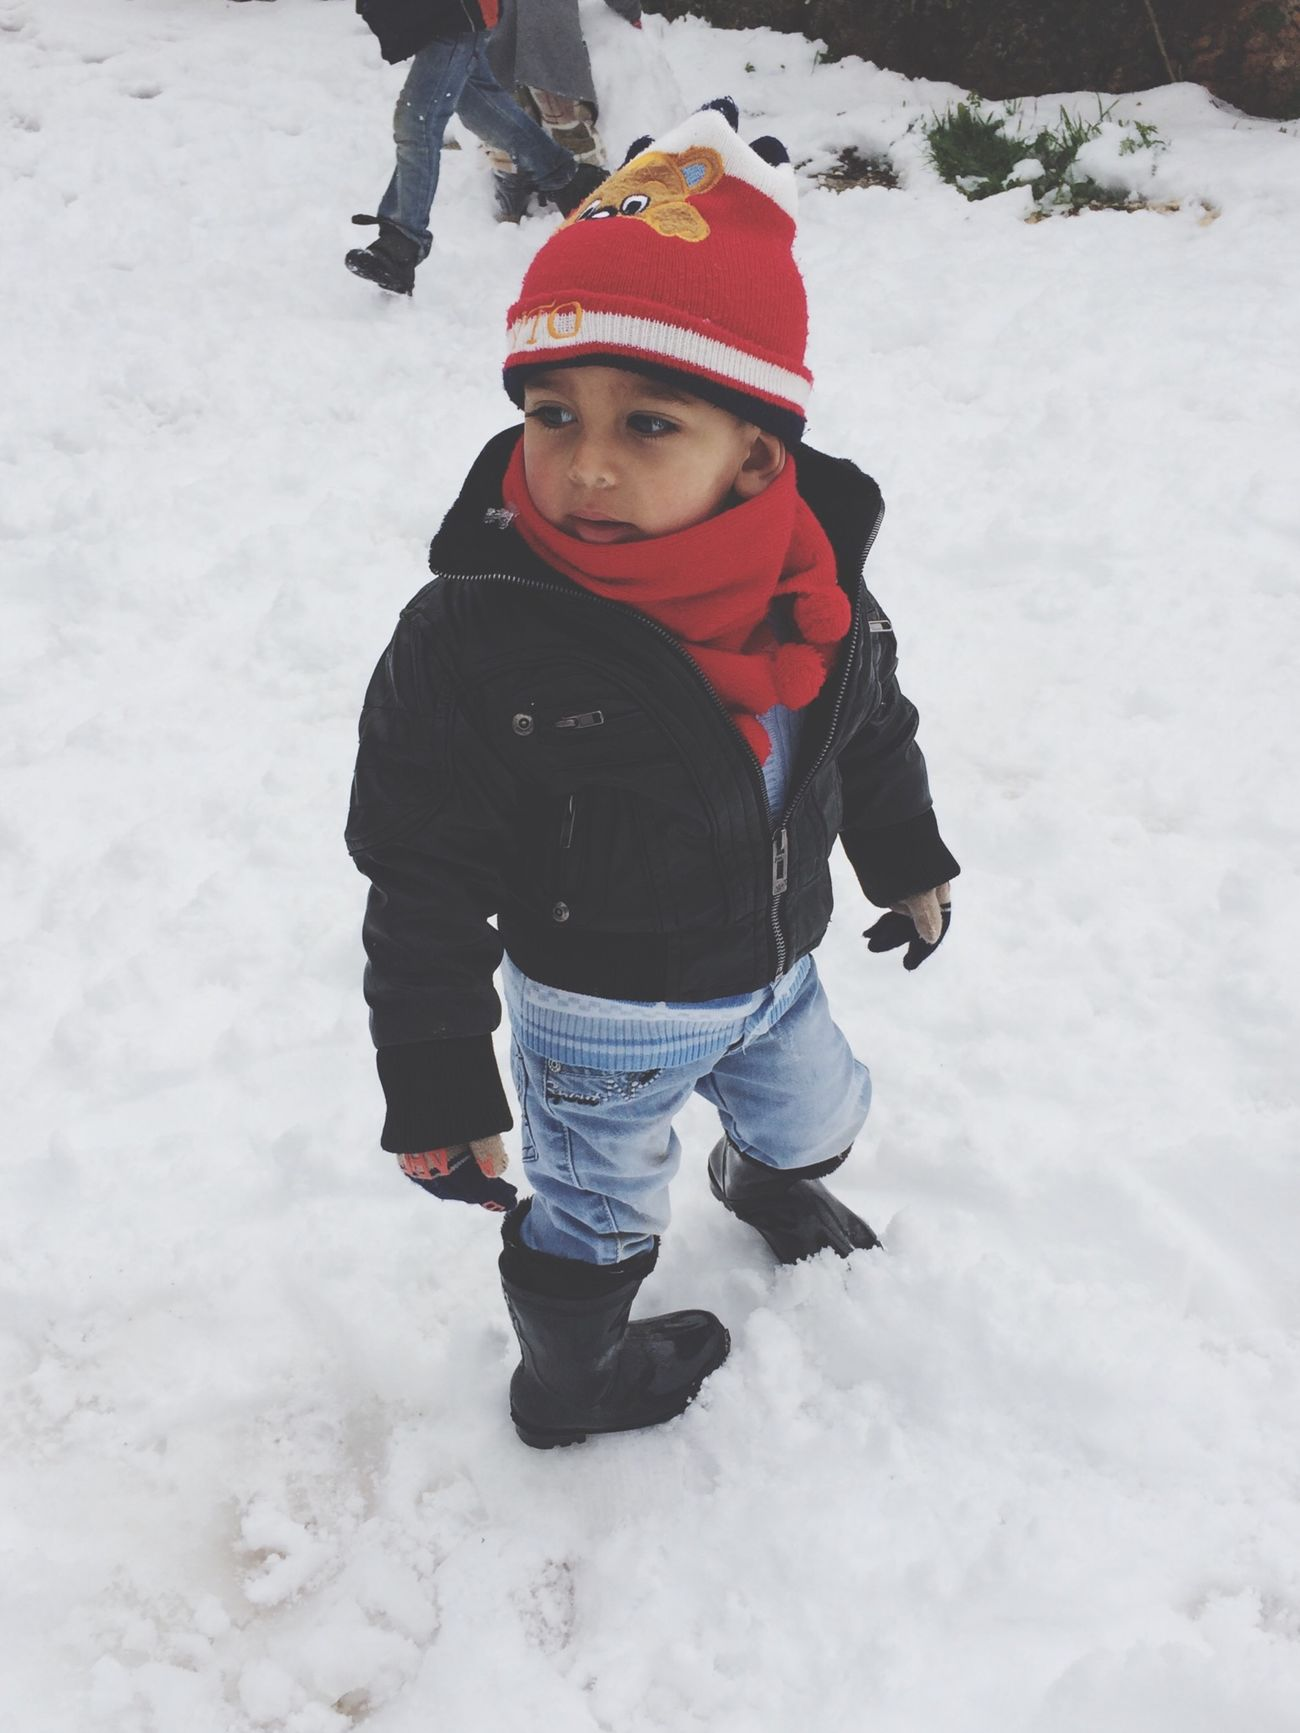 Hi! thats Al HasoOoN play withe the snow Relaxing